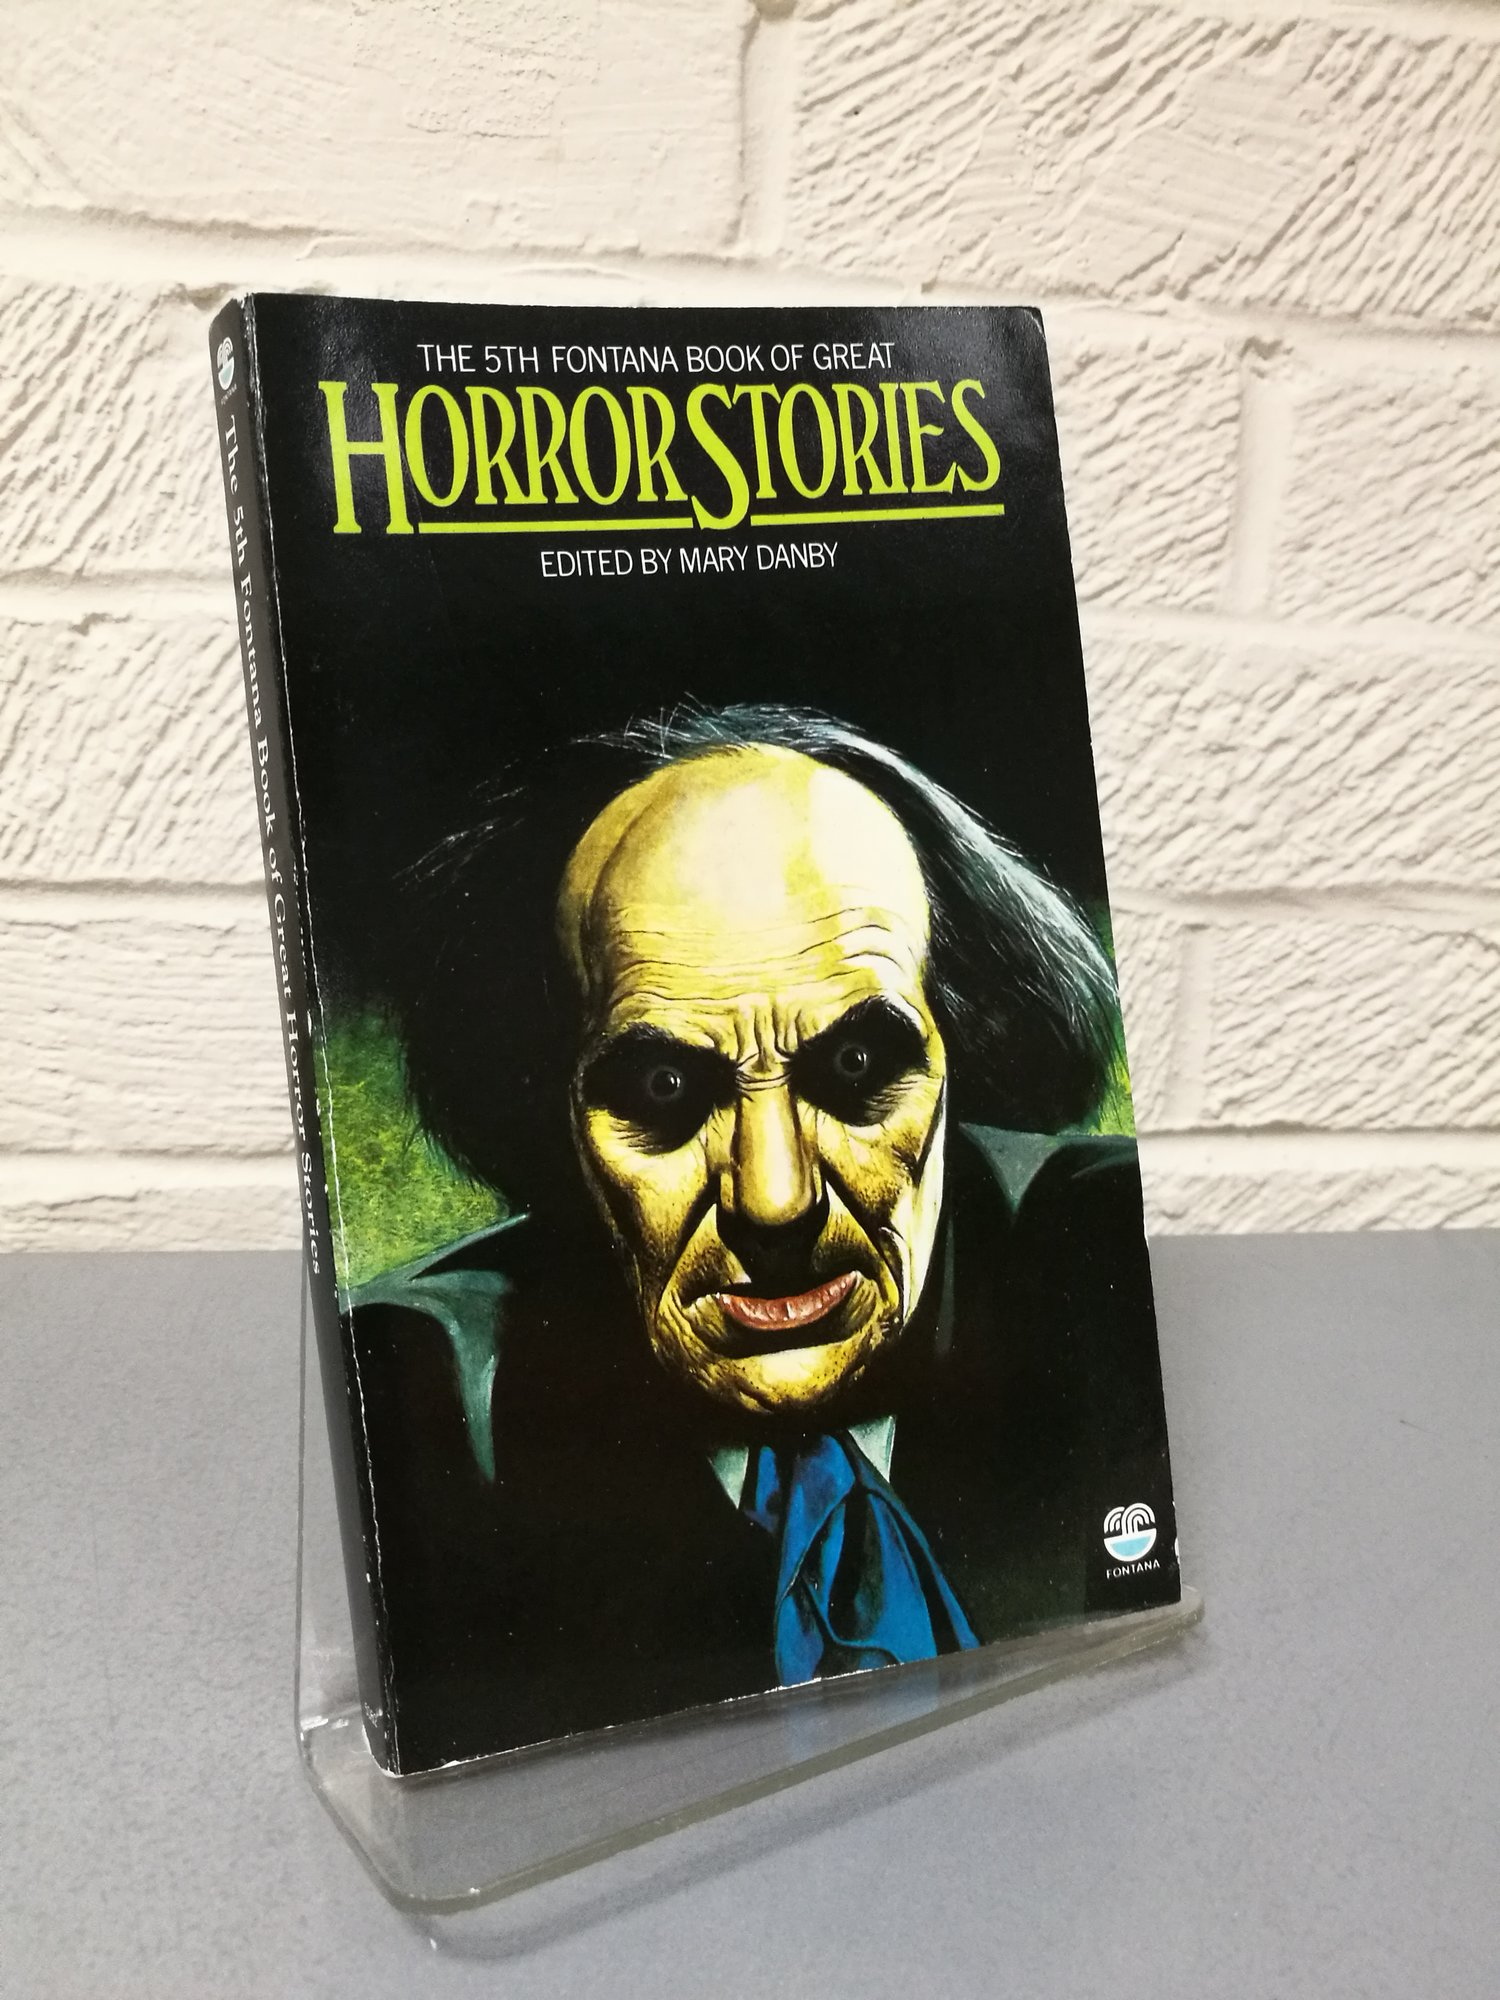 Fontana Book of Great Horror Stories - a delve into the